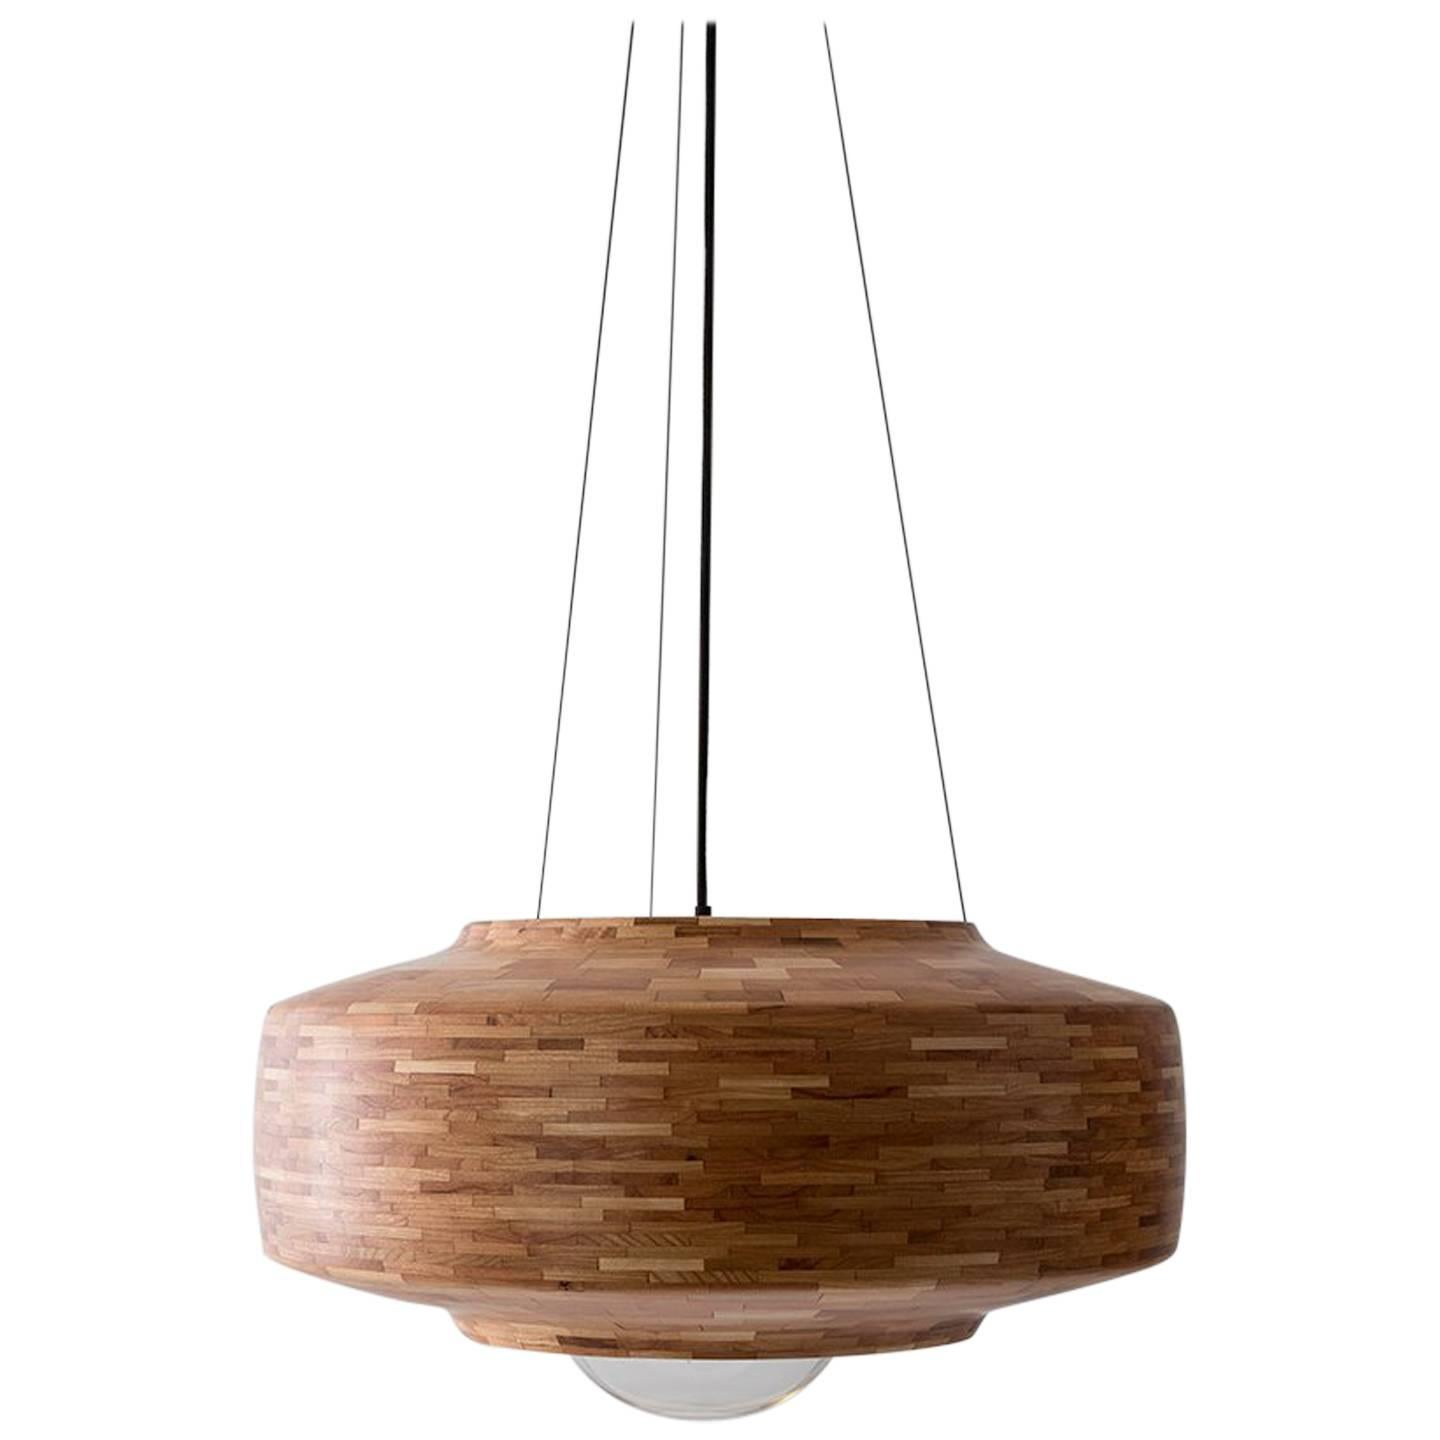 STACKED Saucer Pendant Light by Richard Haining, shown in Cherry, Customizable